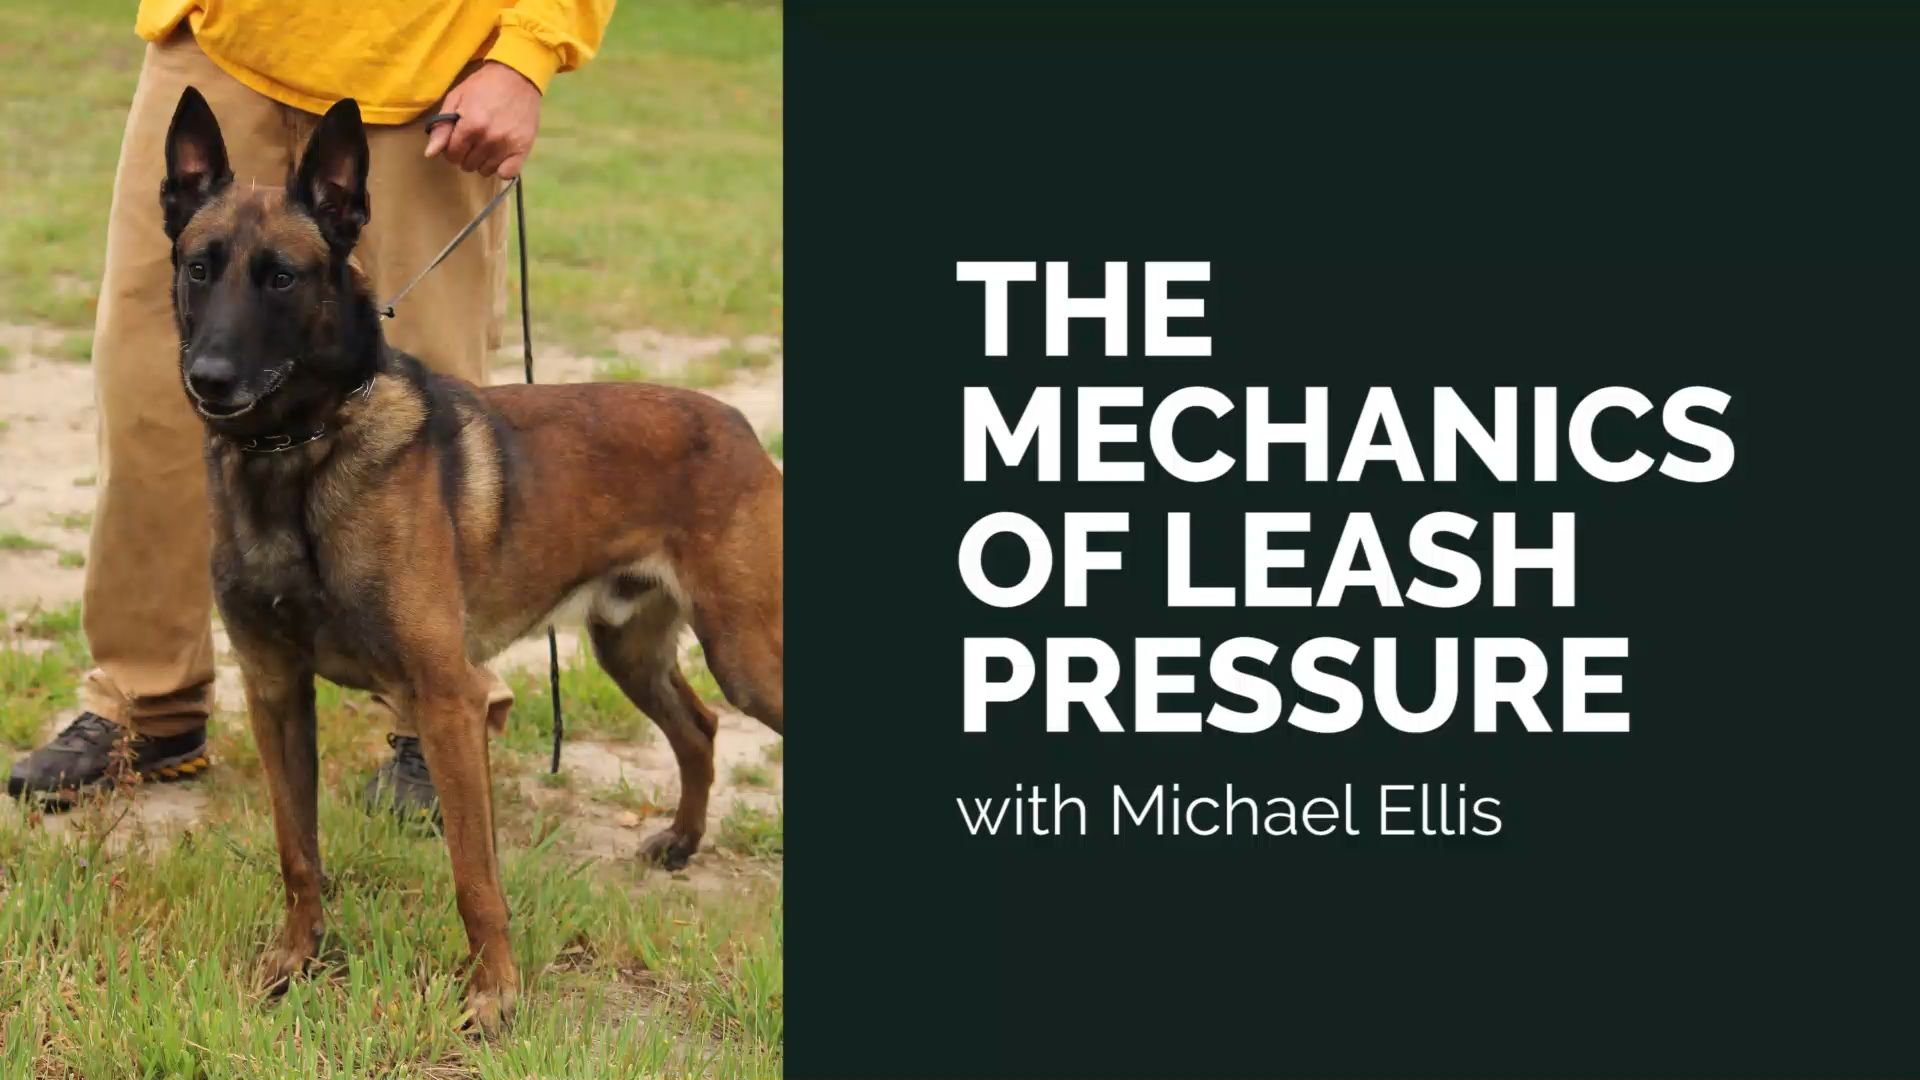 In This Video Michael Ellis Shows You How To Properly Hold A